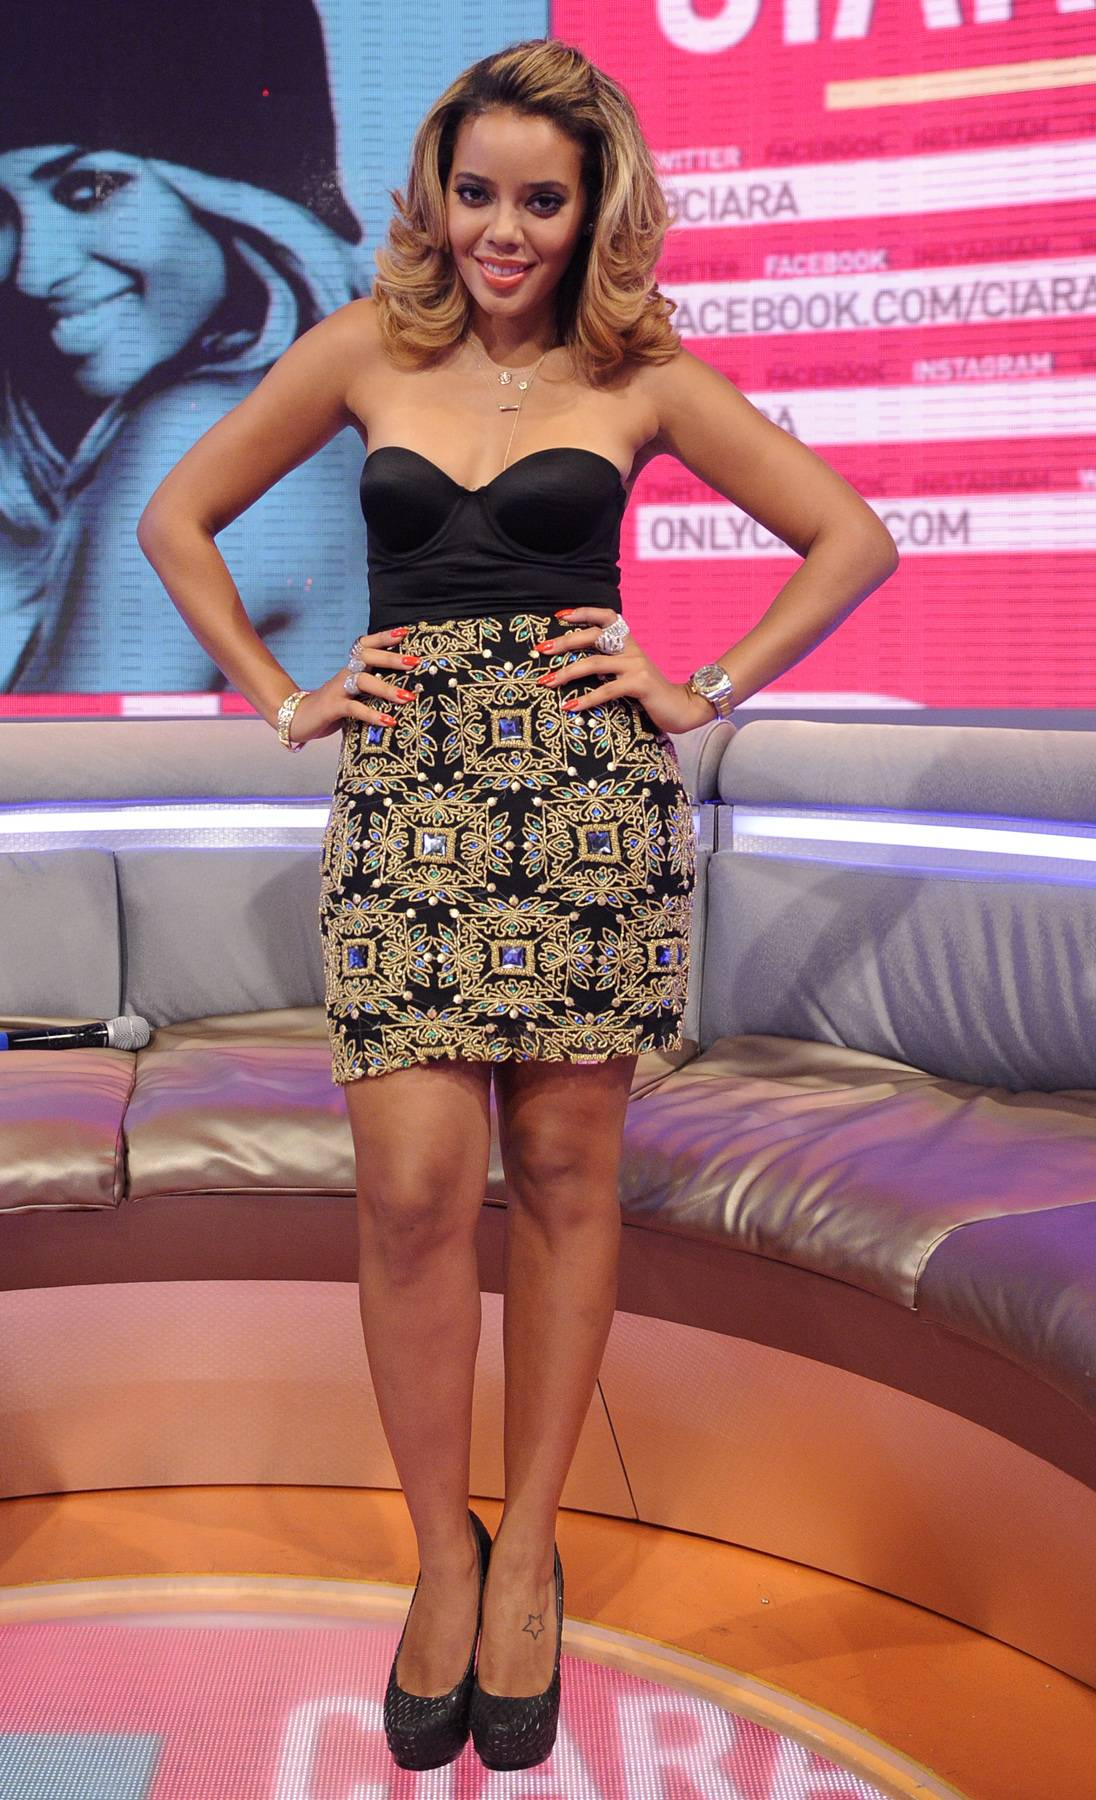 Kaleidoscope Dreams - One of our favorite Angela Simmons outfits is this one because her skirt has a kaleidoscope feel that brings a certain level of edge to what she's wearing. (photo: John Ricard / BET)